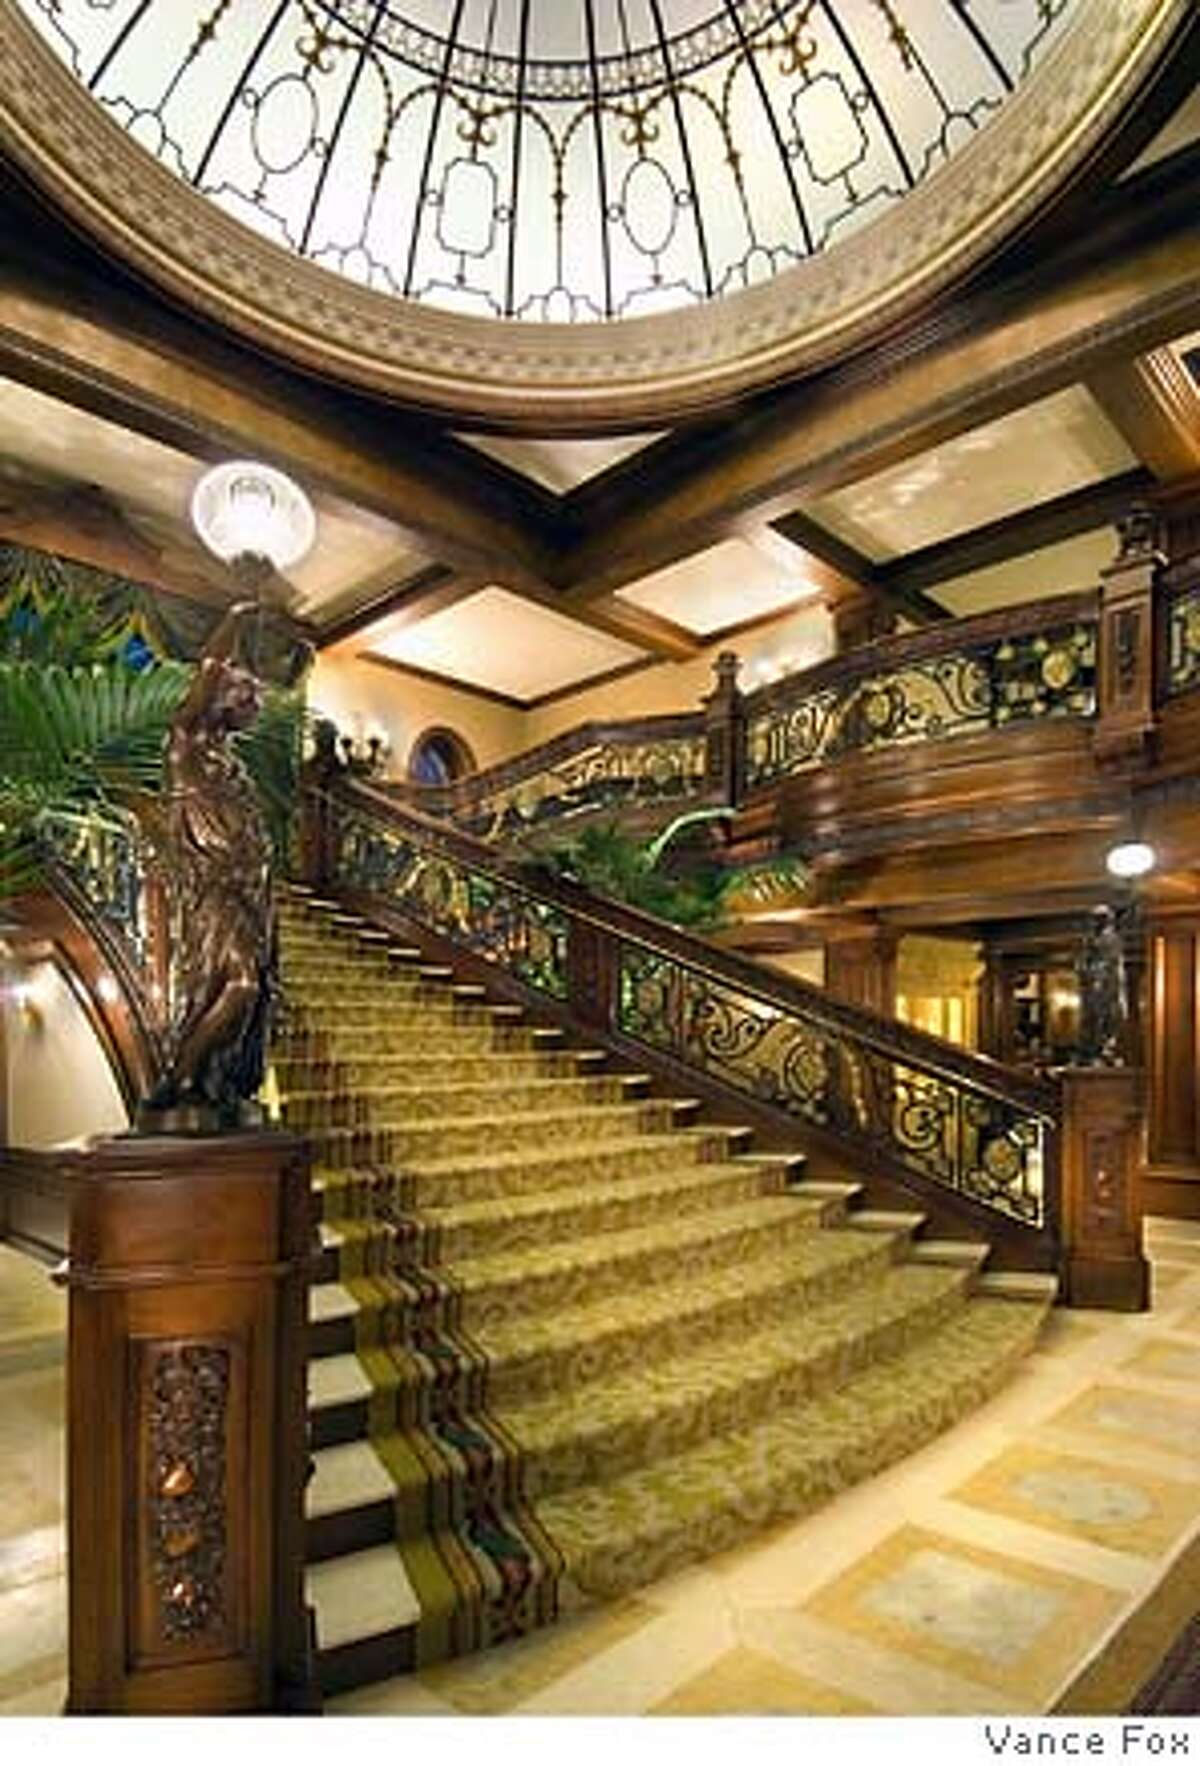 Grand staircase (a replica of the one on the Titanic) at Tranquilty, the 210-acre, 9-building compound on the eastern shore of Lake Tahoe owned by Tommy Hilfeger co-founder Joel Horowitz and now on the market for $100 million.